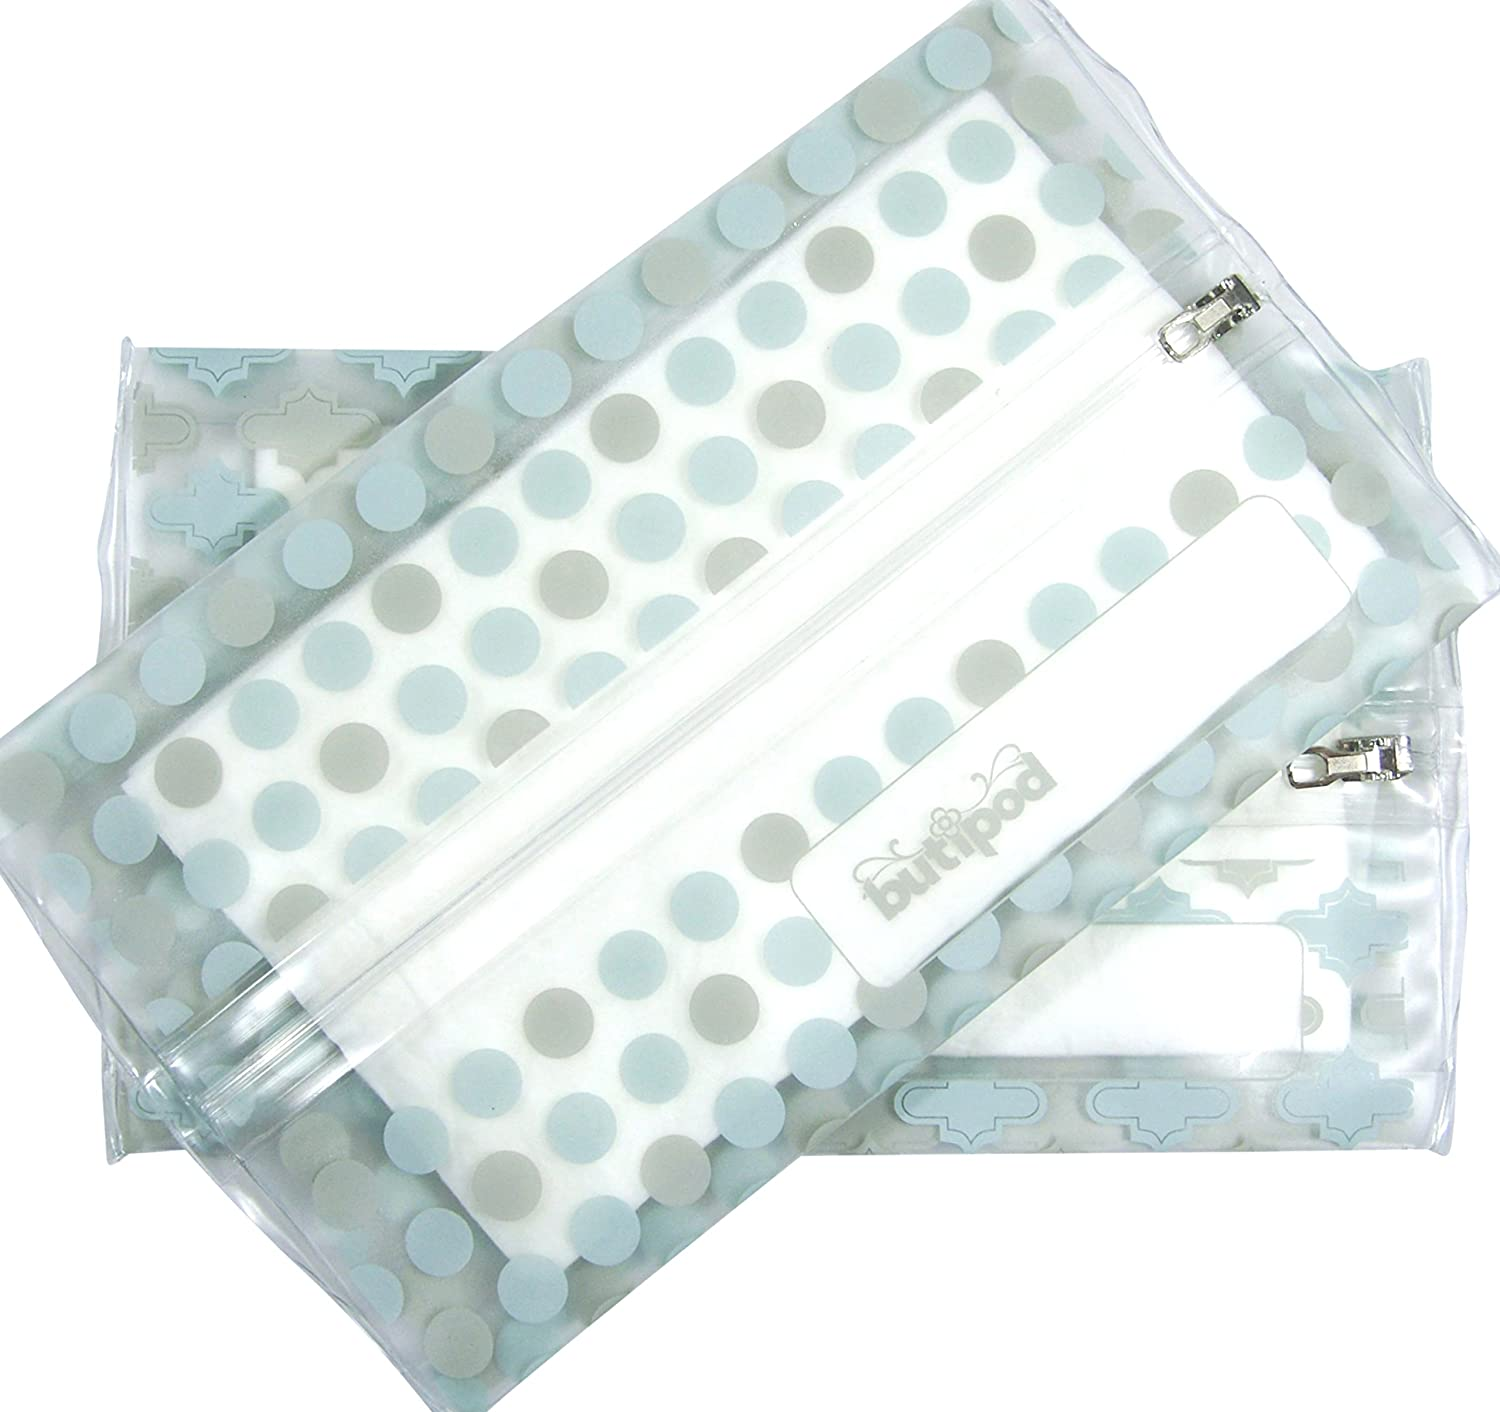 Travel Wipes Bag Travel Wipes Dispenser Wipe Pouches Baby Wet Wipe Cases 3 Pack Different Colors Reusable Eco Friendly Durable Portable Wet Wipe Pouch